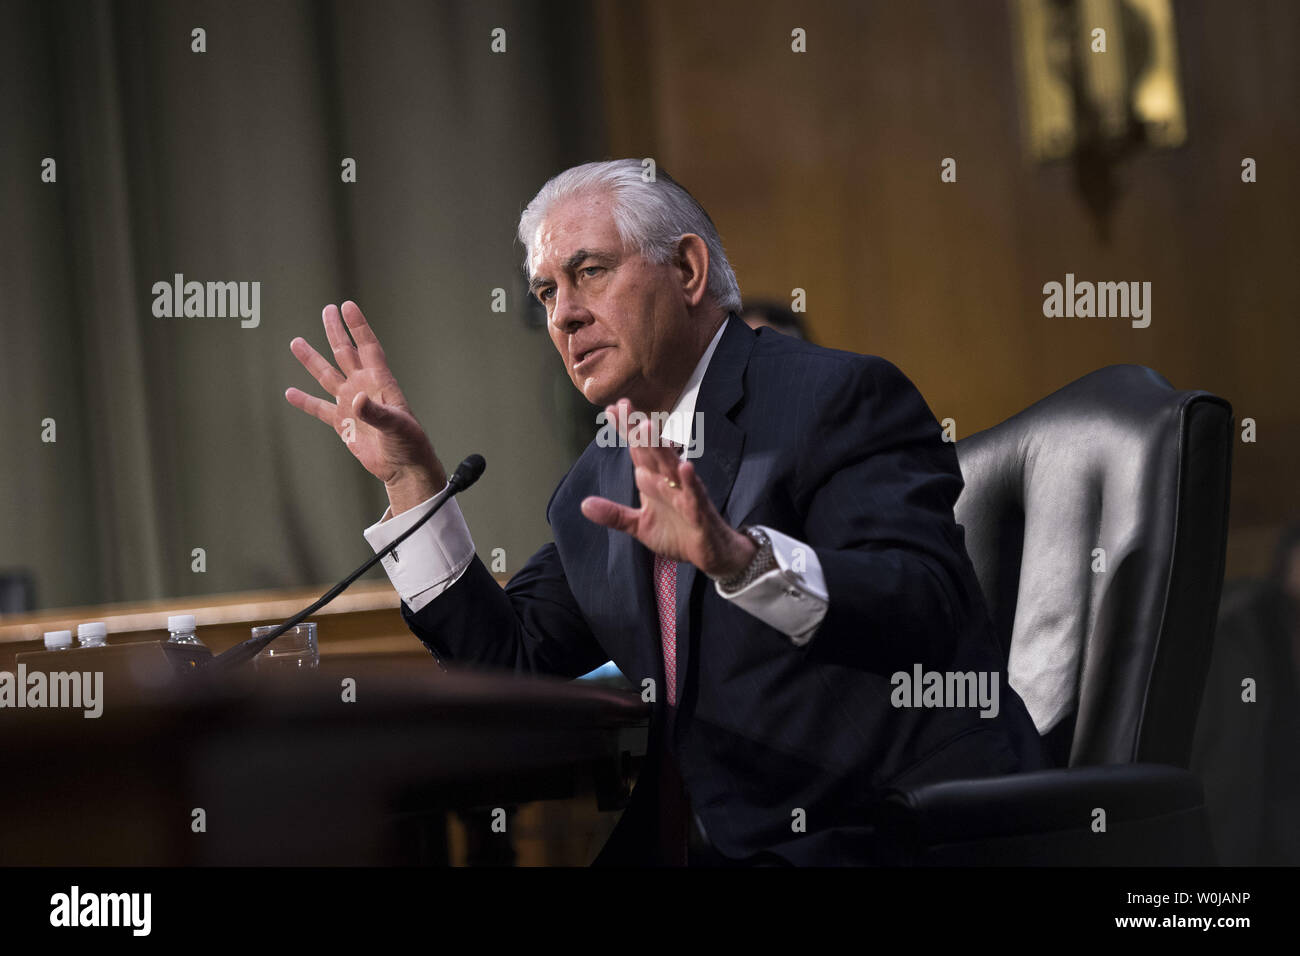 Former ExxonMobil CEO Rex Tillerson, President-Elect Trump's nominee for Secretary of State, testifies during his Senate Foreign Relations Committee confirmation hearing, on Capitol Hill in Washington, D.C. on January 11, 2017. Tillerson's close business relationship with Russia is expected to be scrutinized by the panel. Photo by Kevin Dietsch/UPI - Stock Image